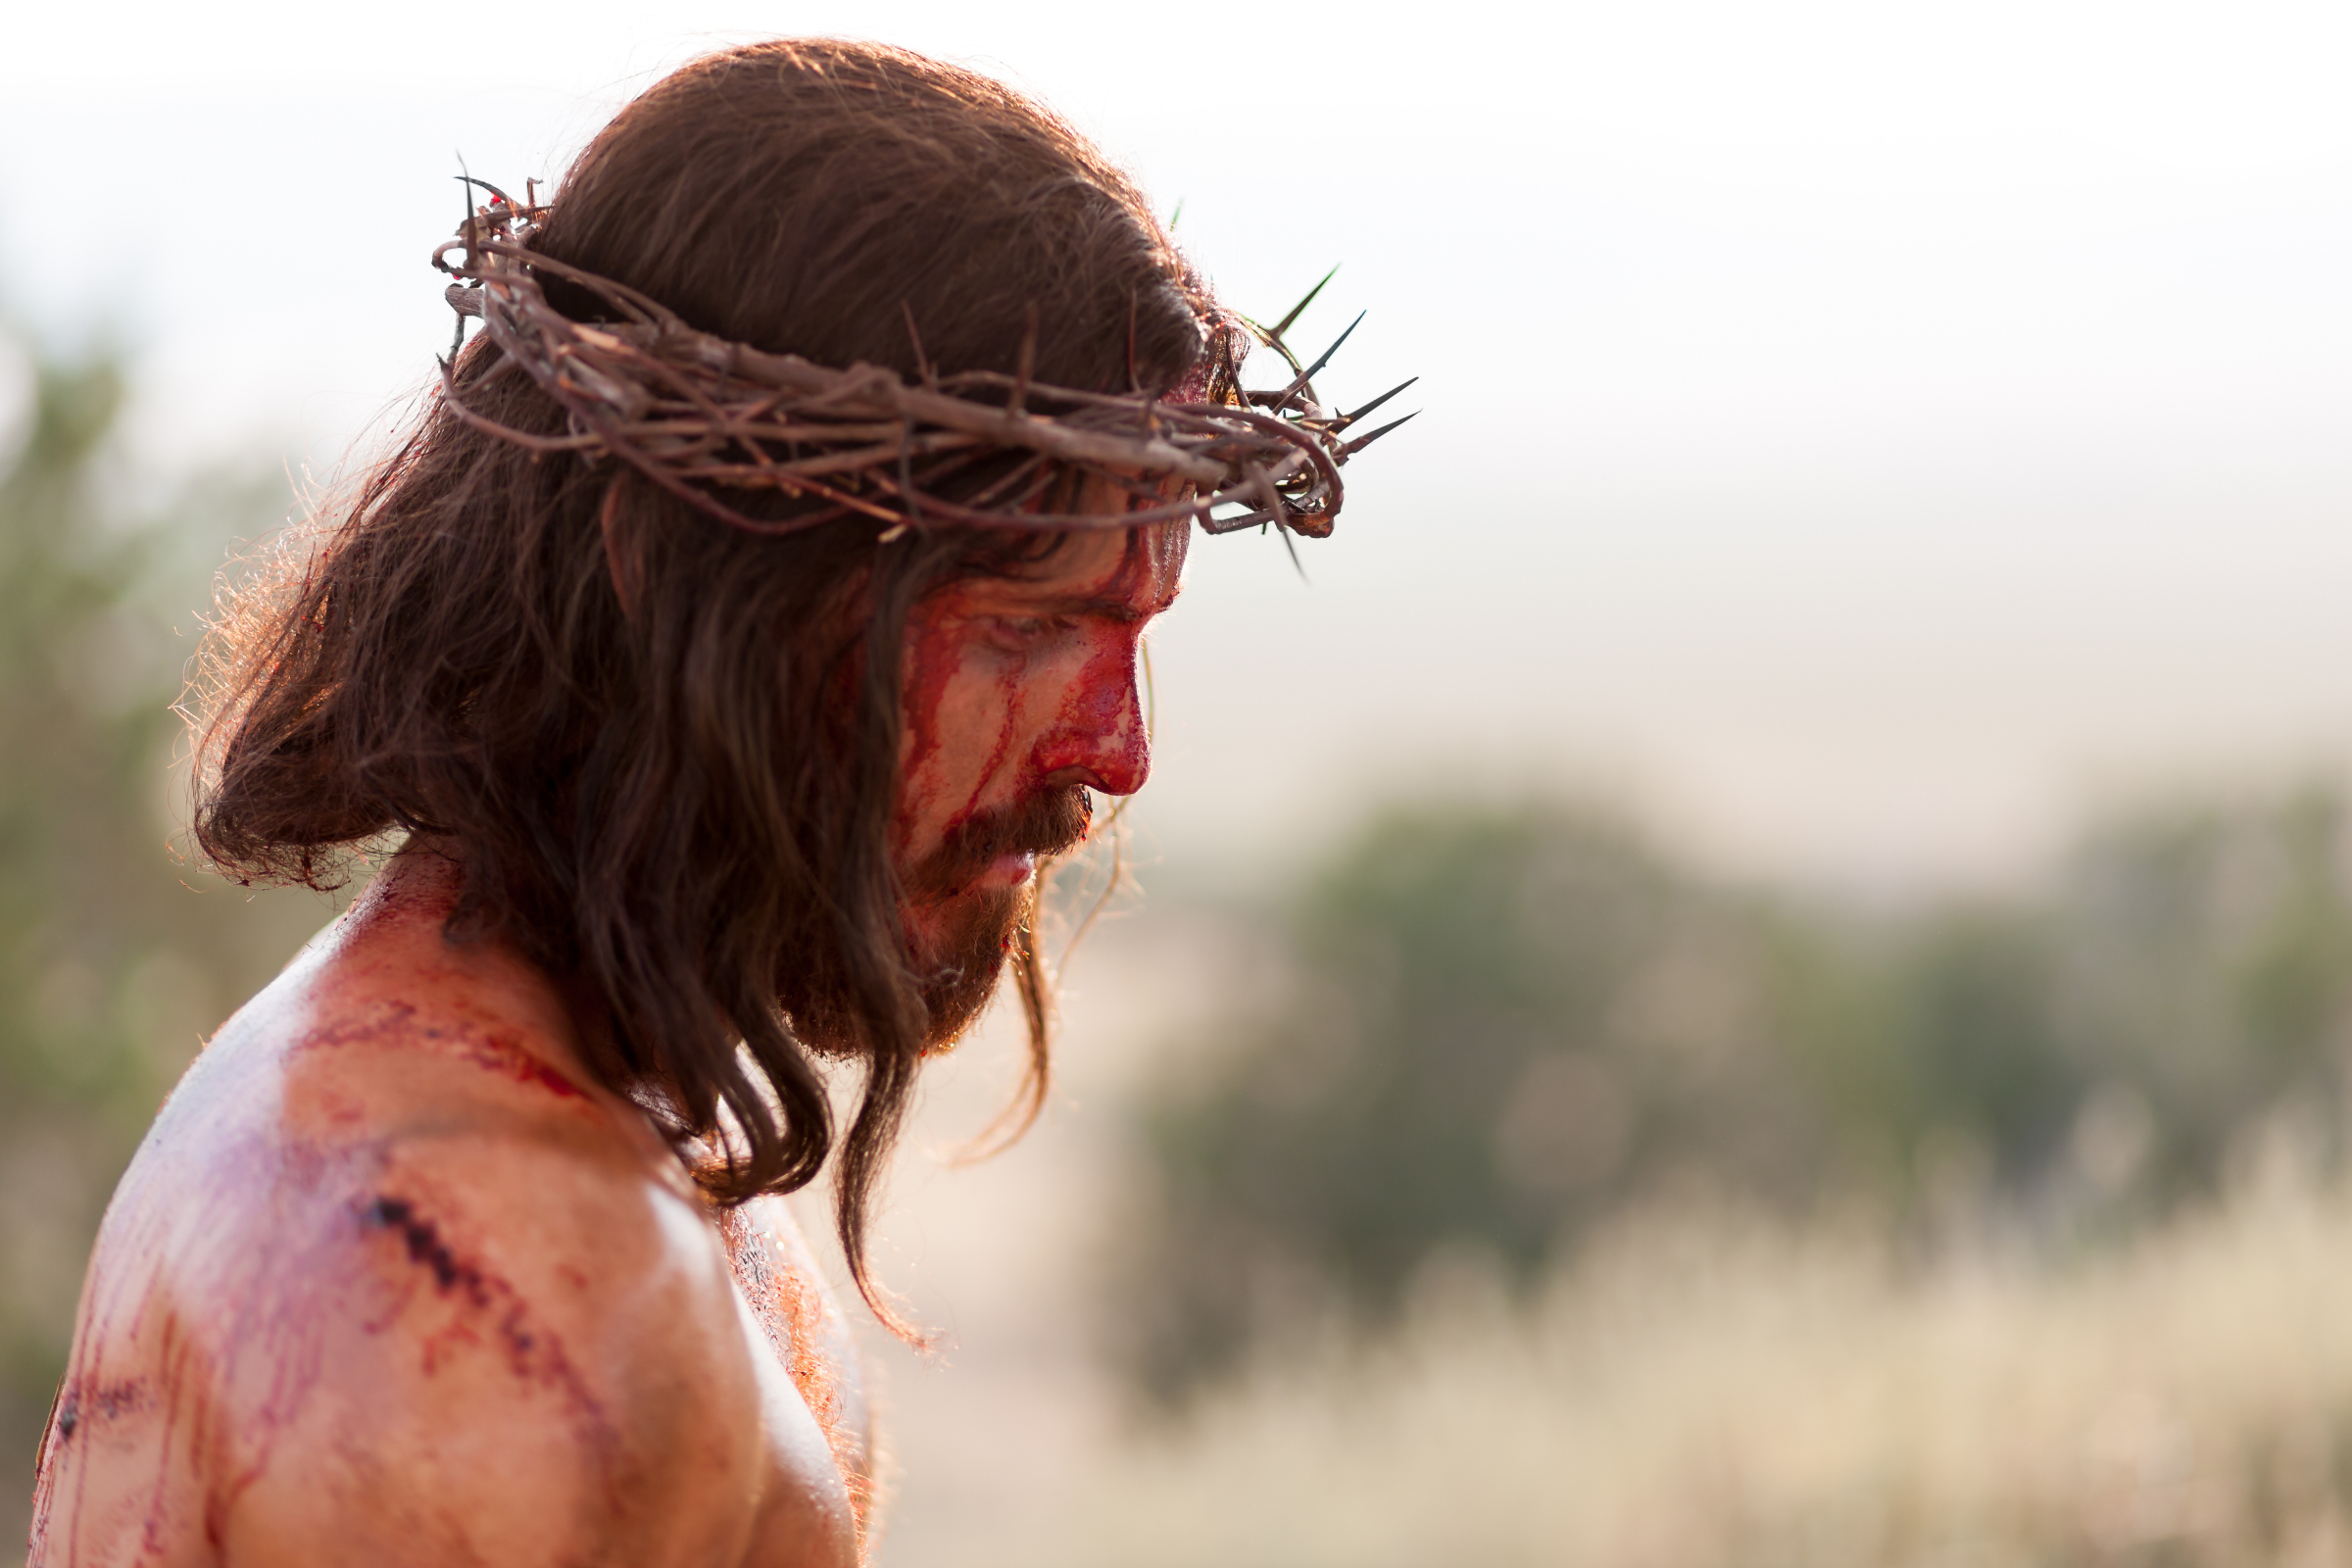 Jesus Is Scourged and Crucified  Jesus Is Scourged and Crucified